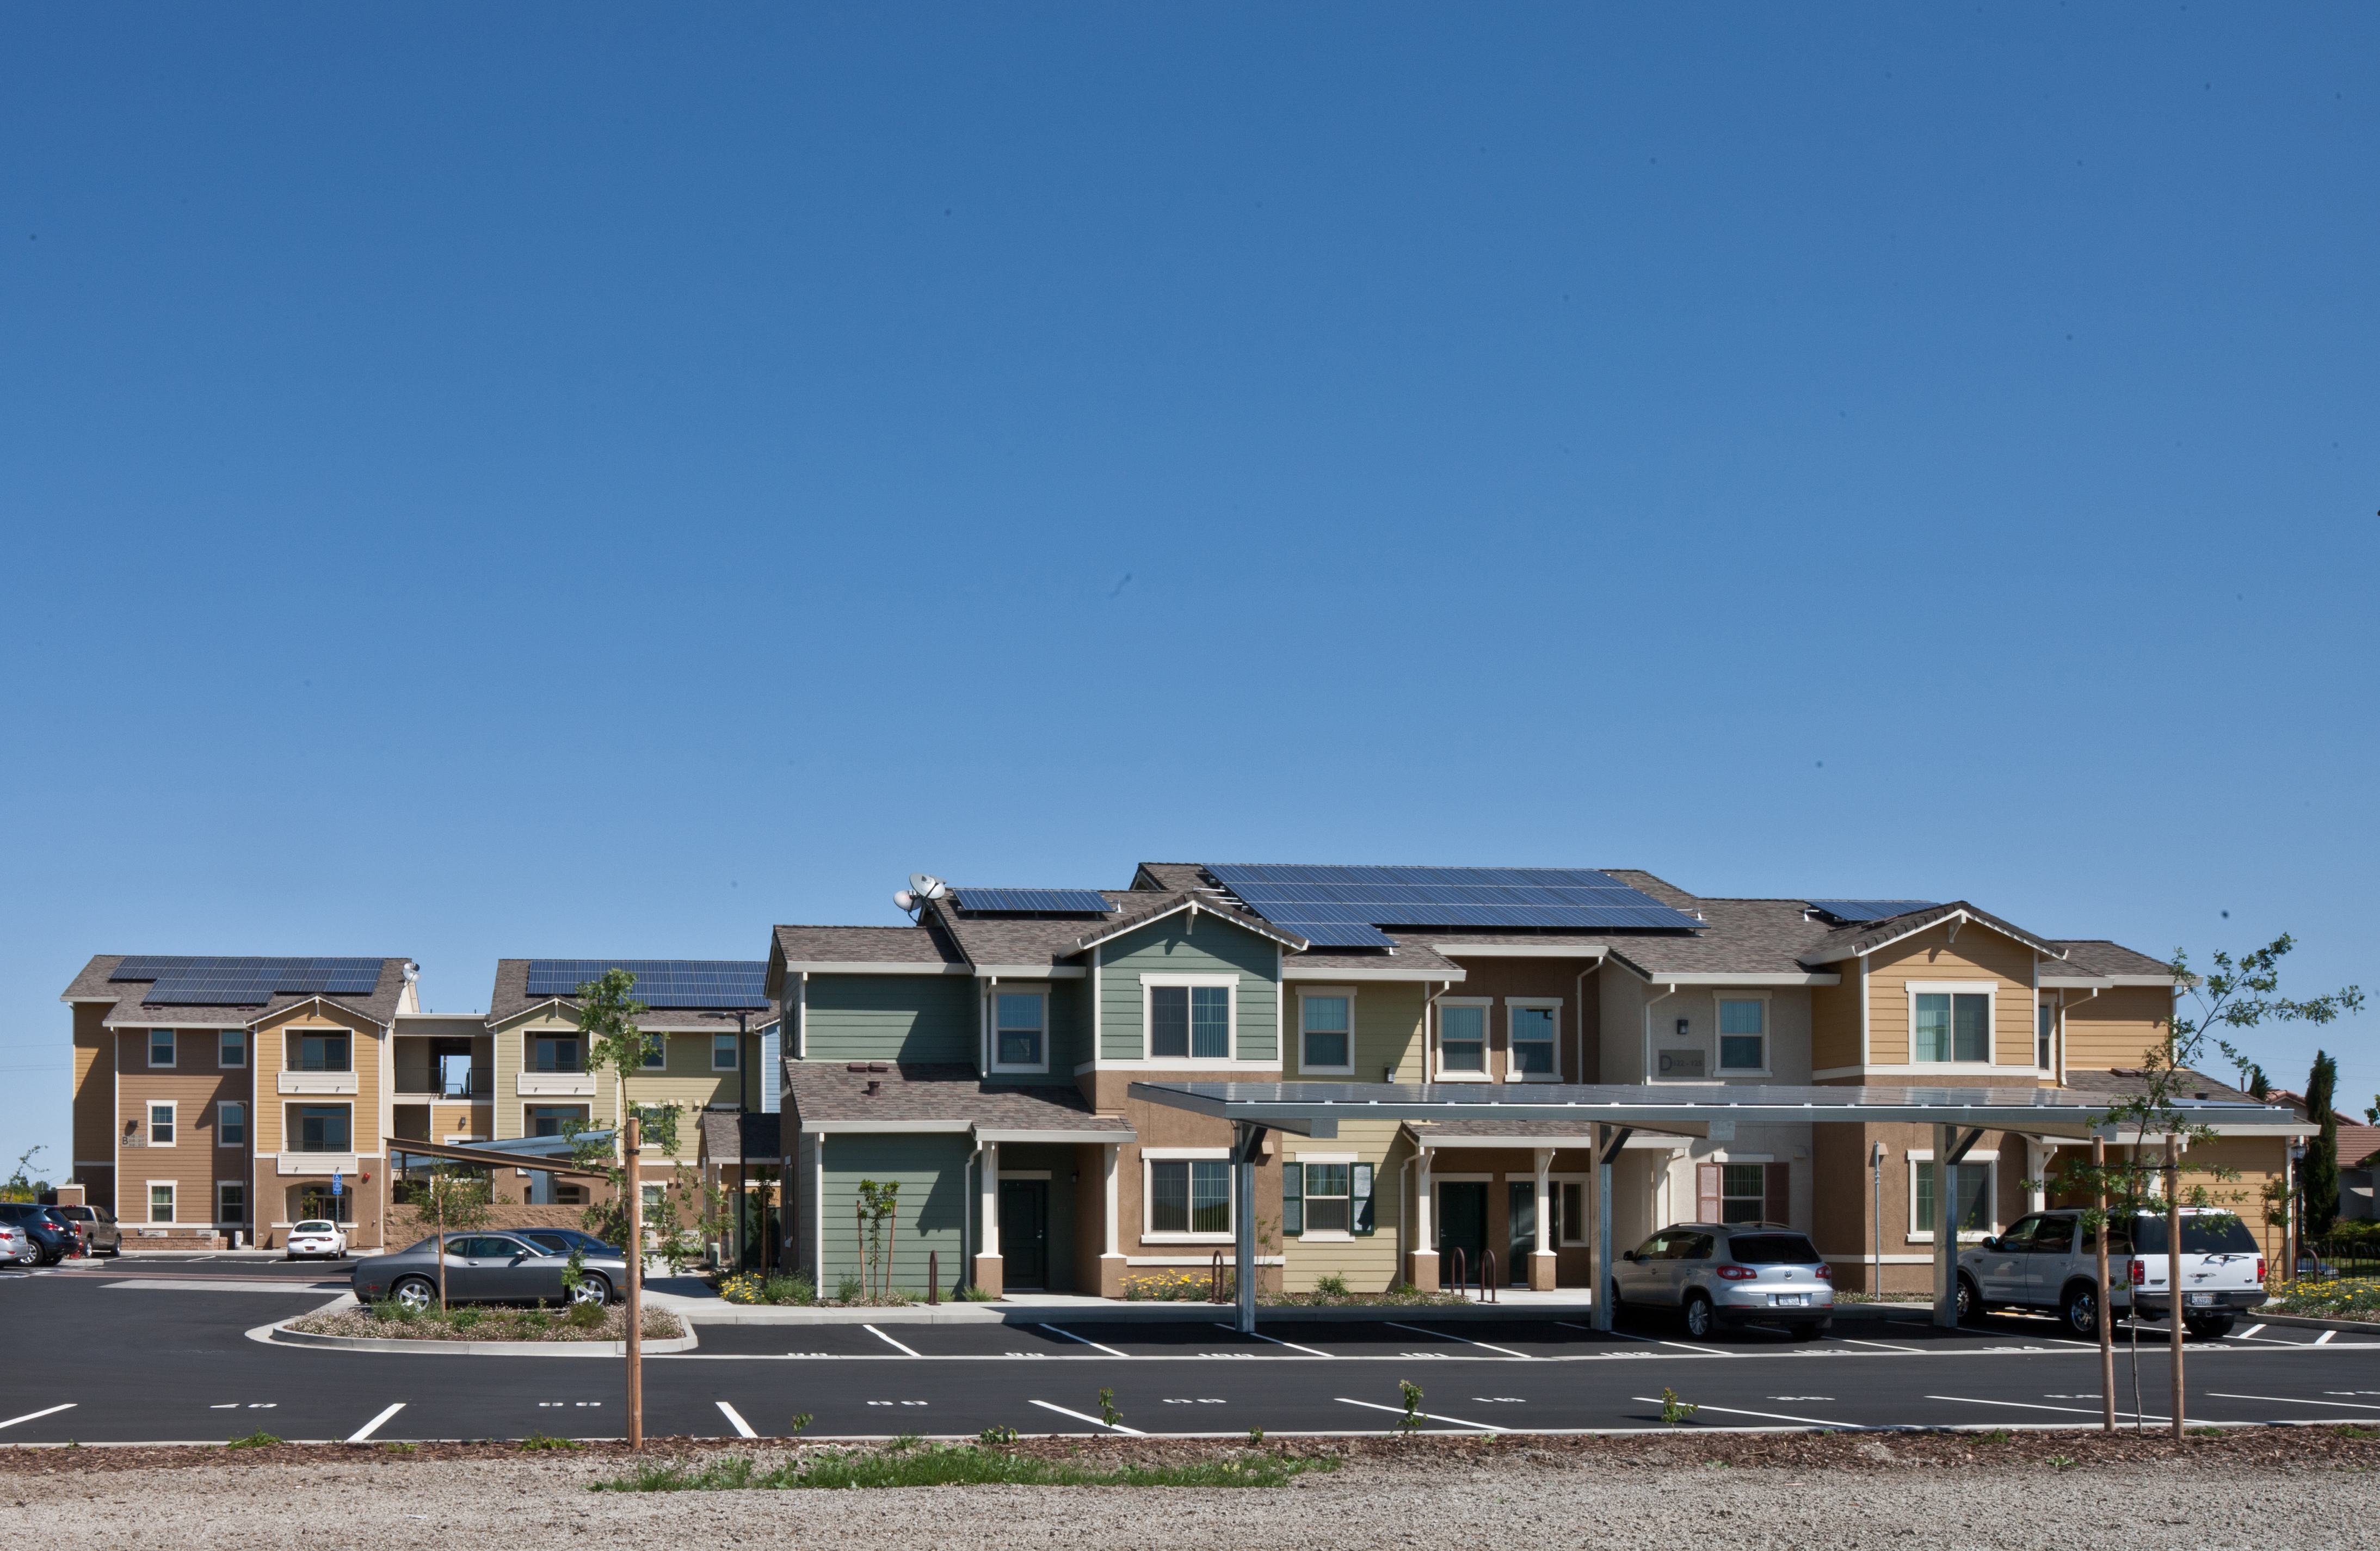 Zero Net Energy Affordable Housing: Home for Agricultural Workers in Woodland, California